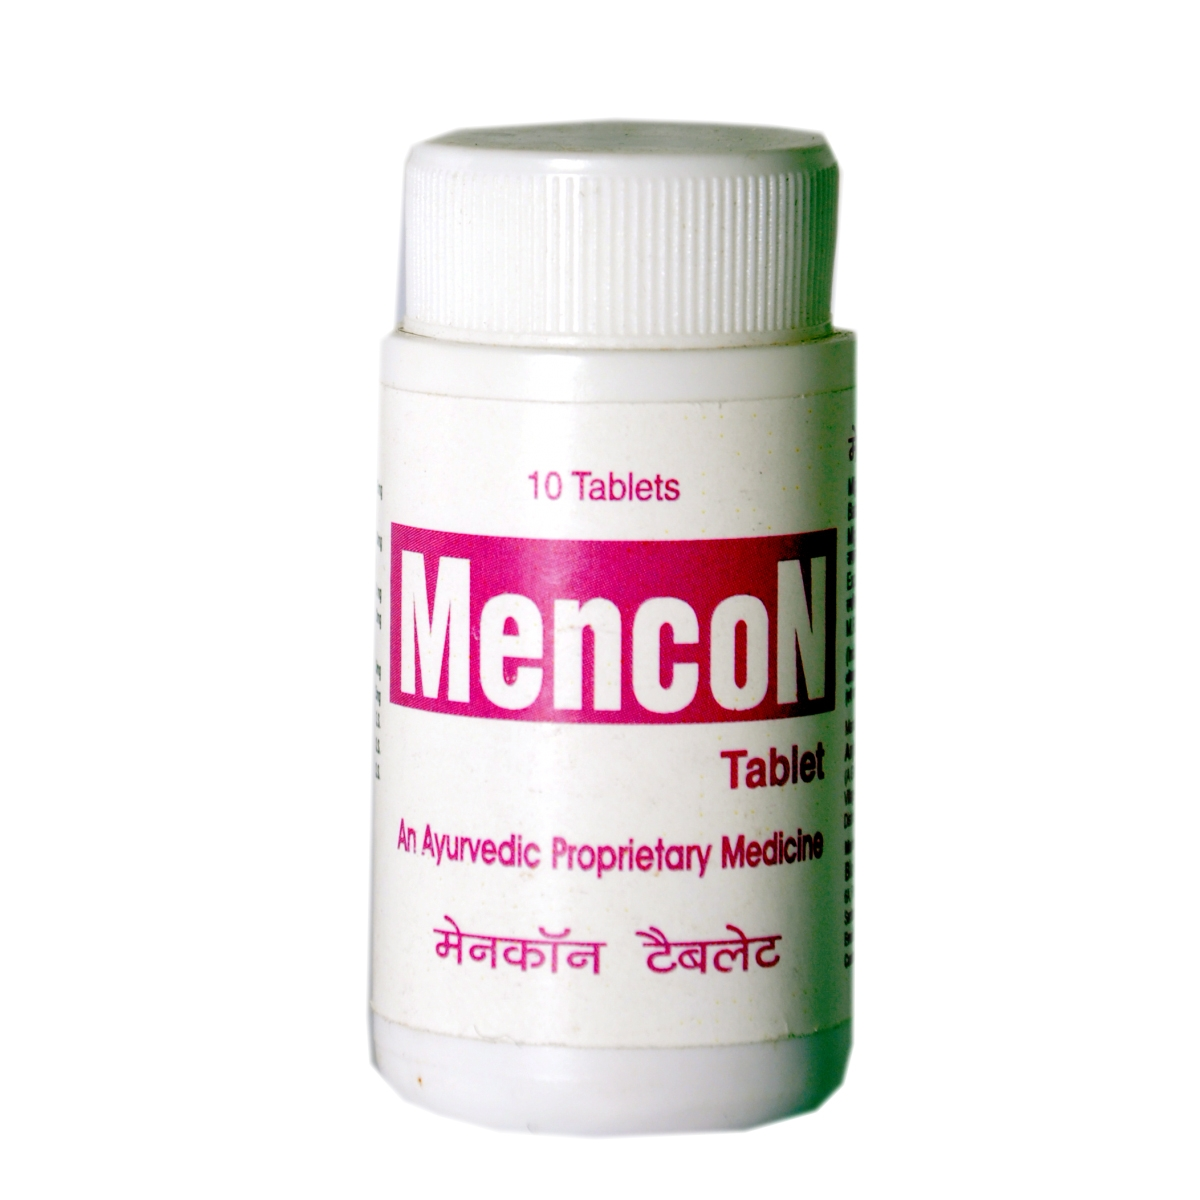 Mencon Tablet In Arunachal Pradesh